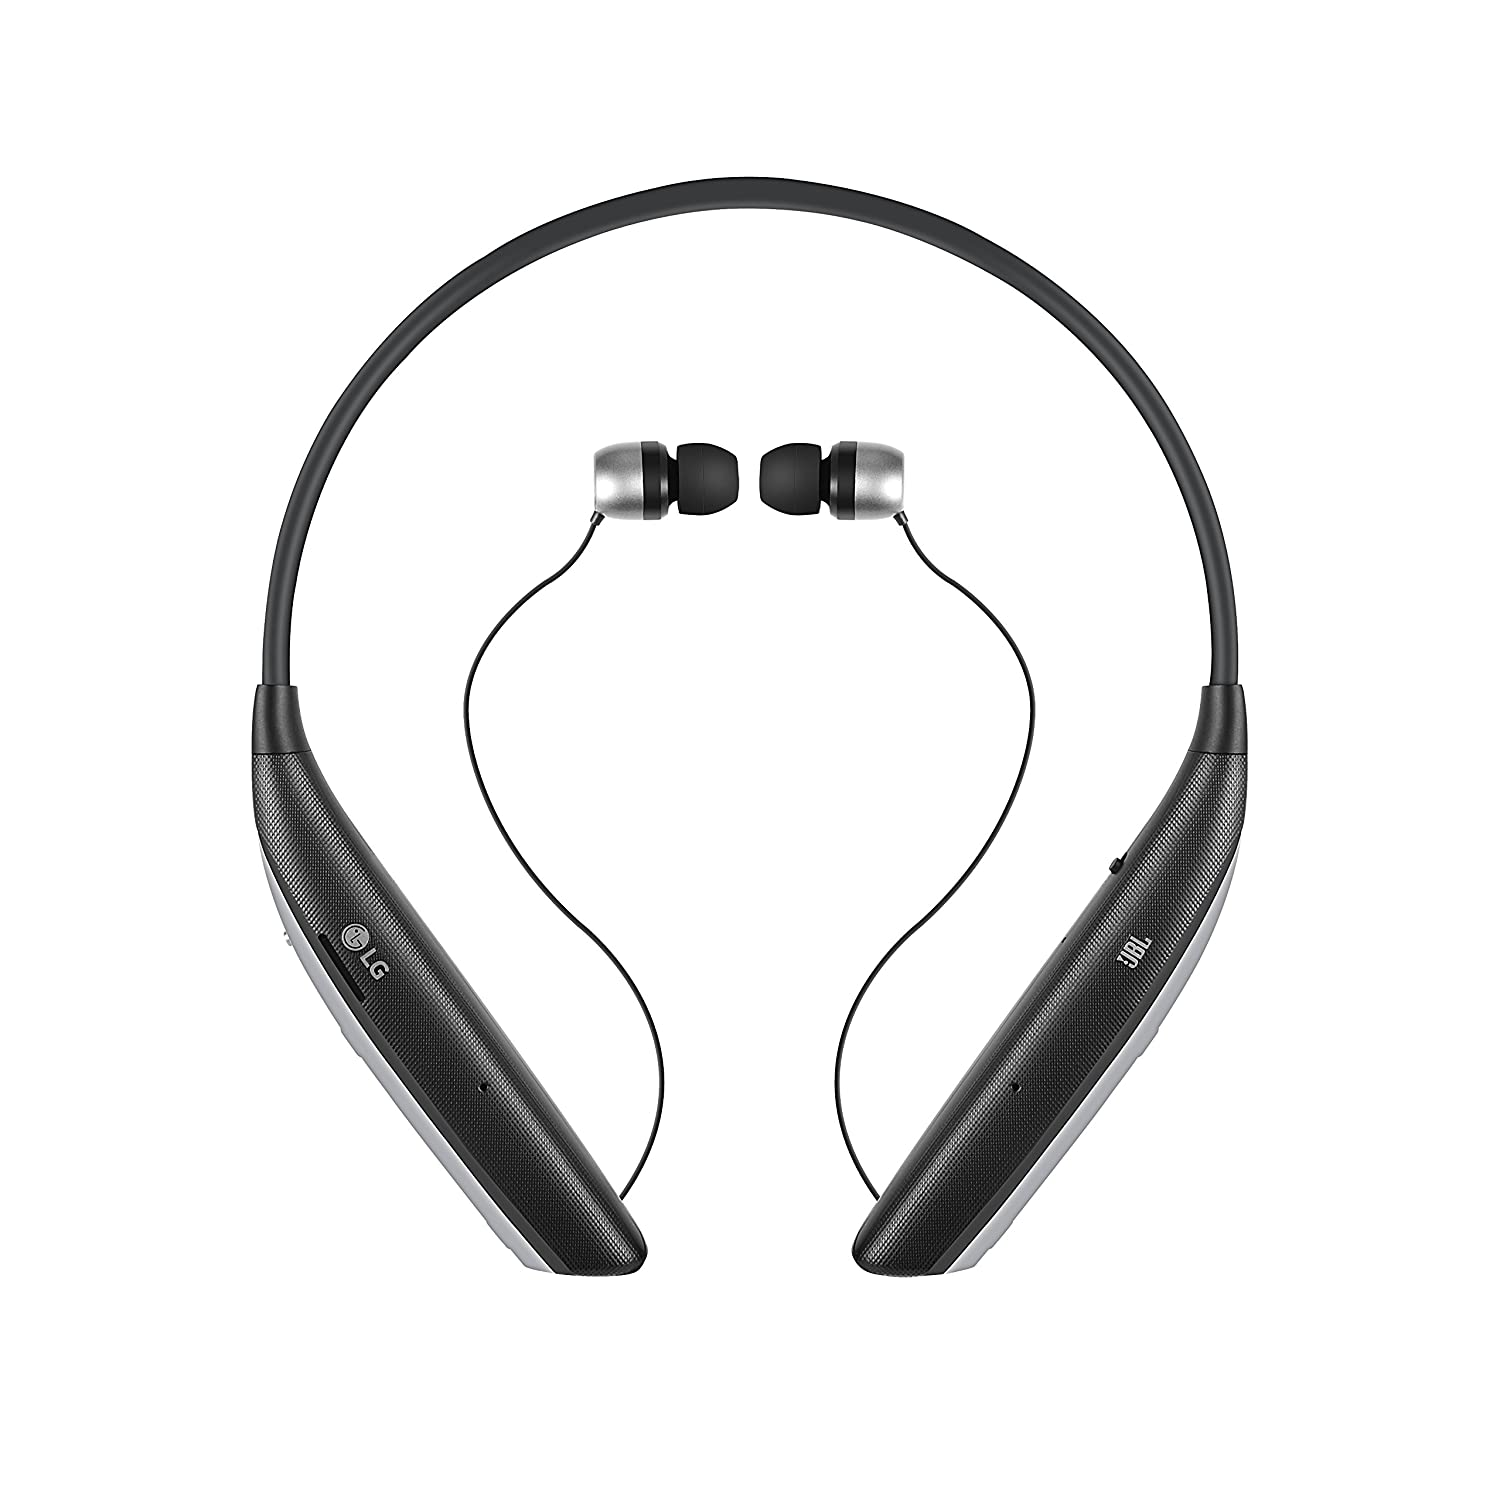 Auriculares lg hbs-820s blk